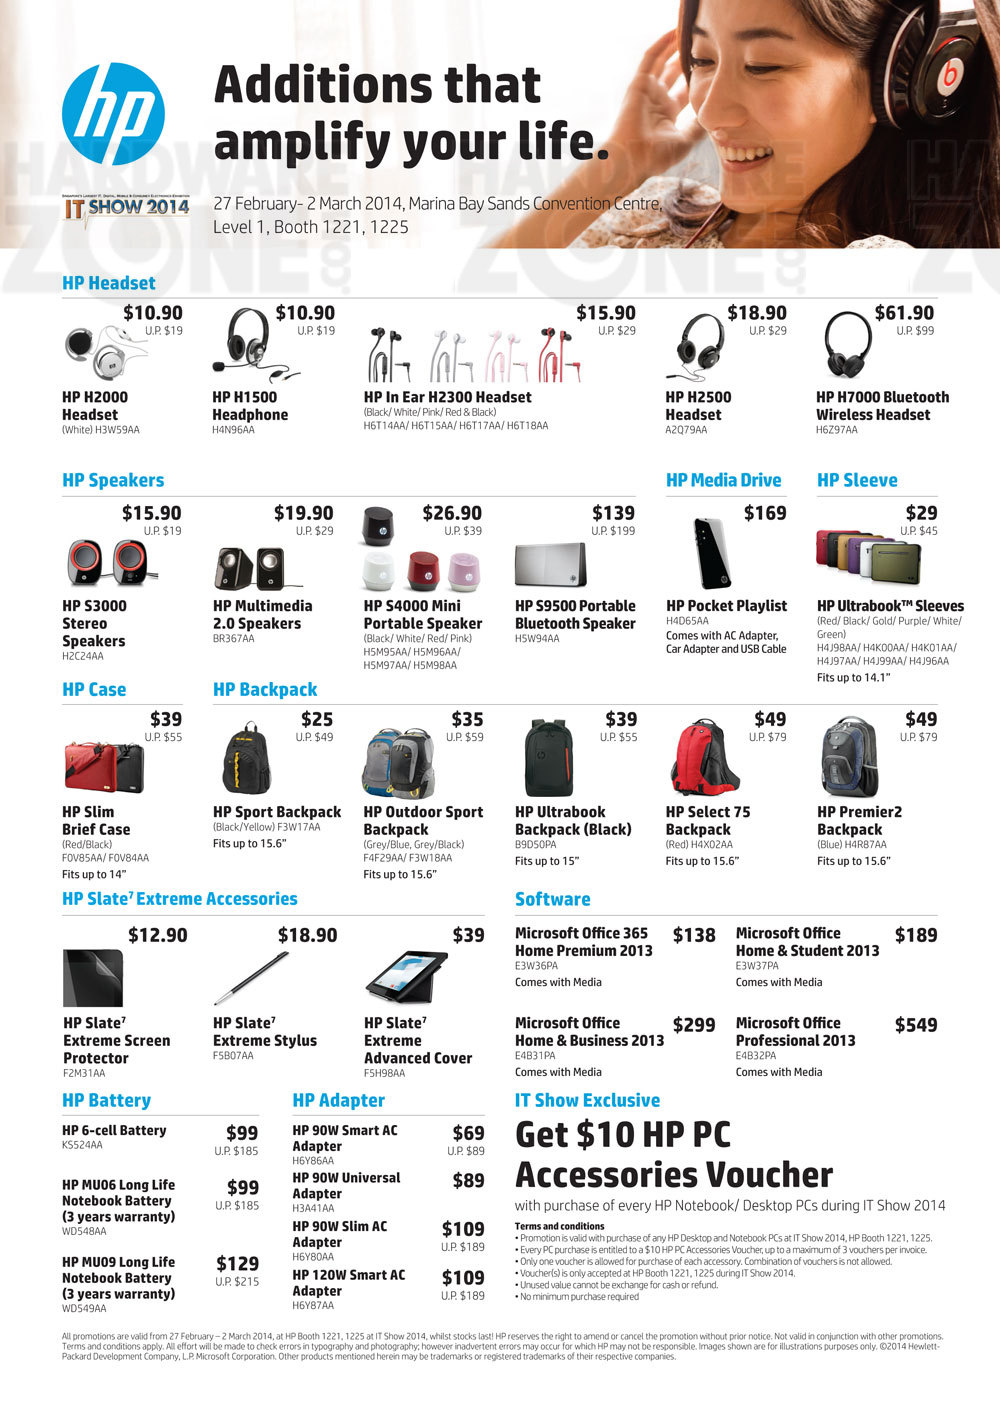 HP mobile accessories